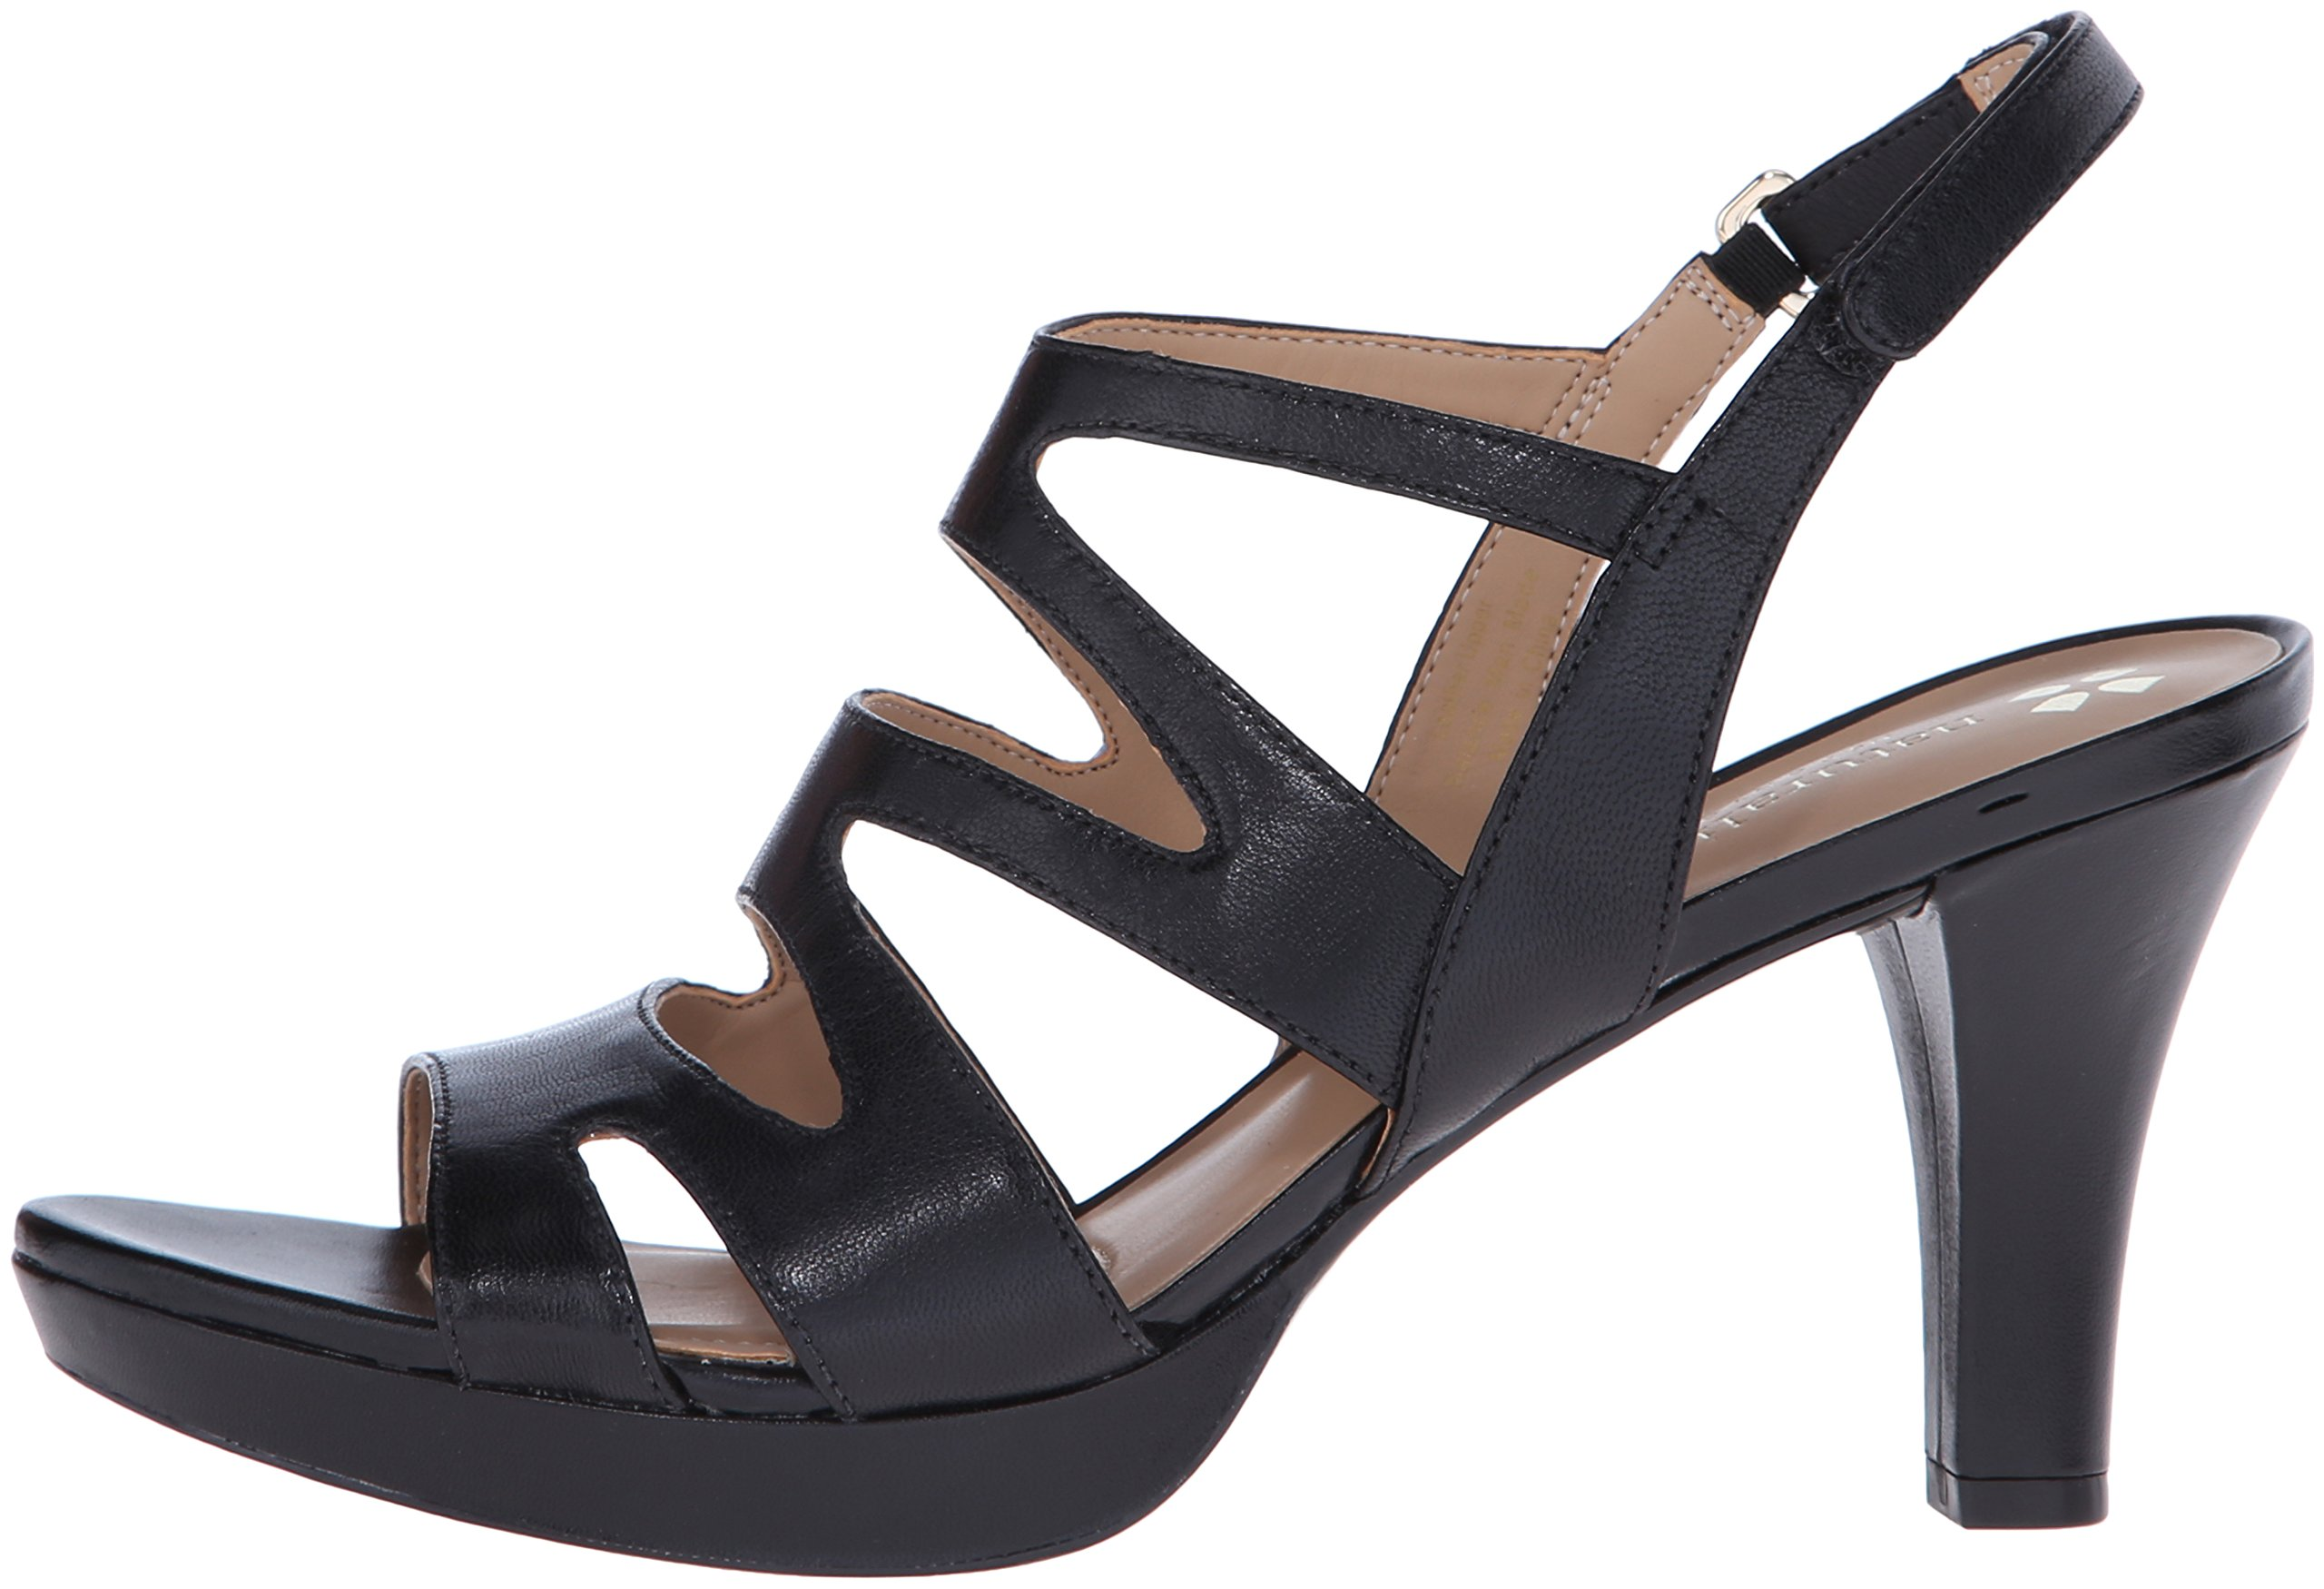 Naturalizer Women's Pressley Platform Dress Sandal, Black, 7 W US by Naturalizer (Image #5)